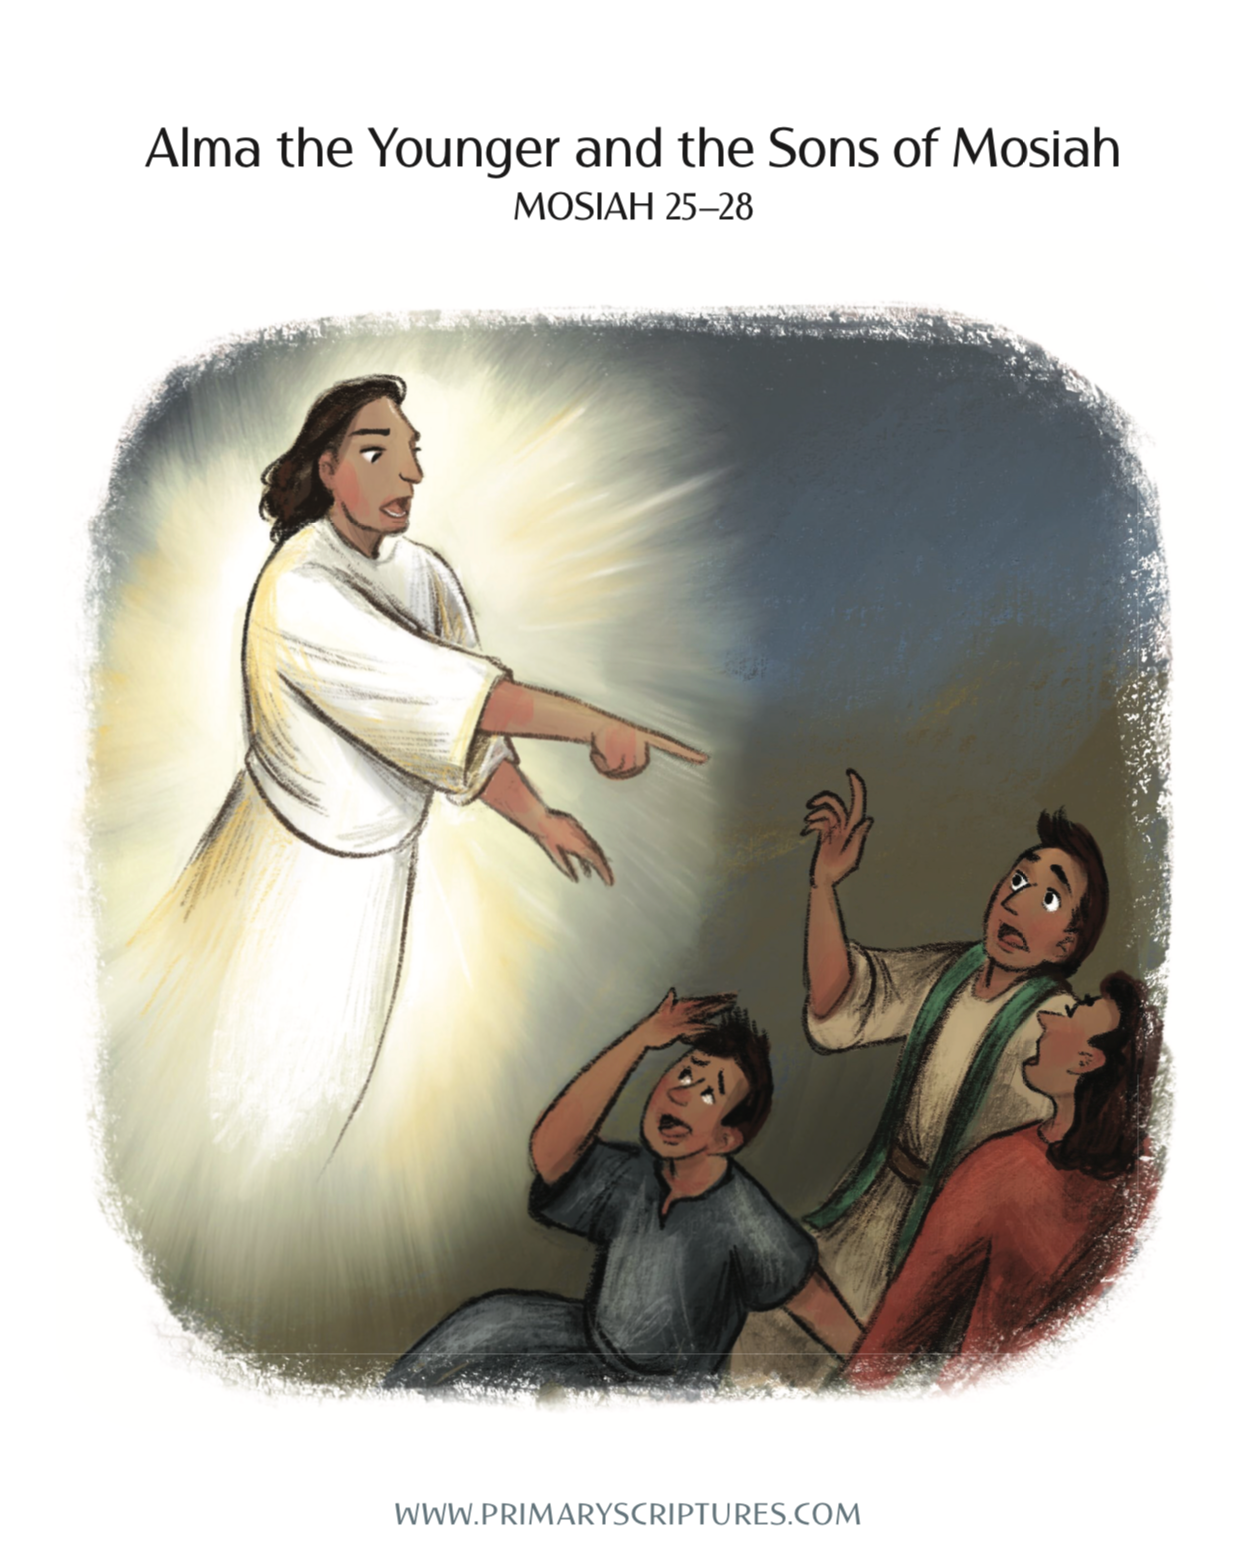 Alma the Younger and the Sons of Mosiah